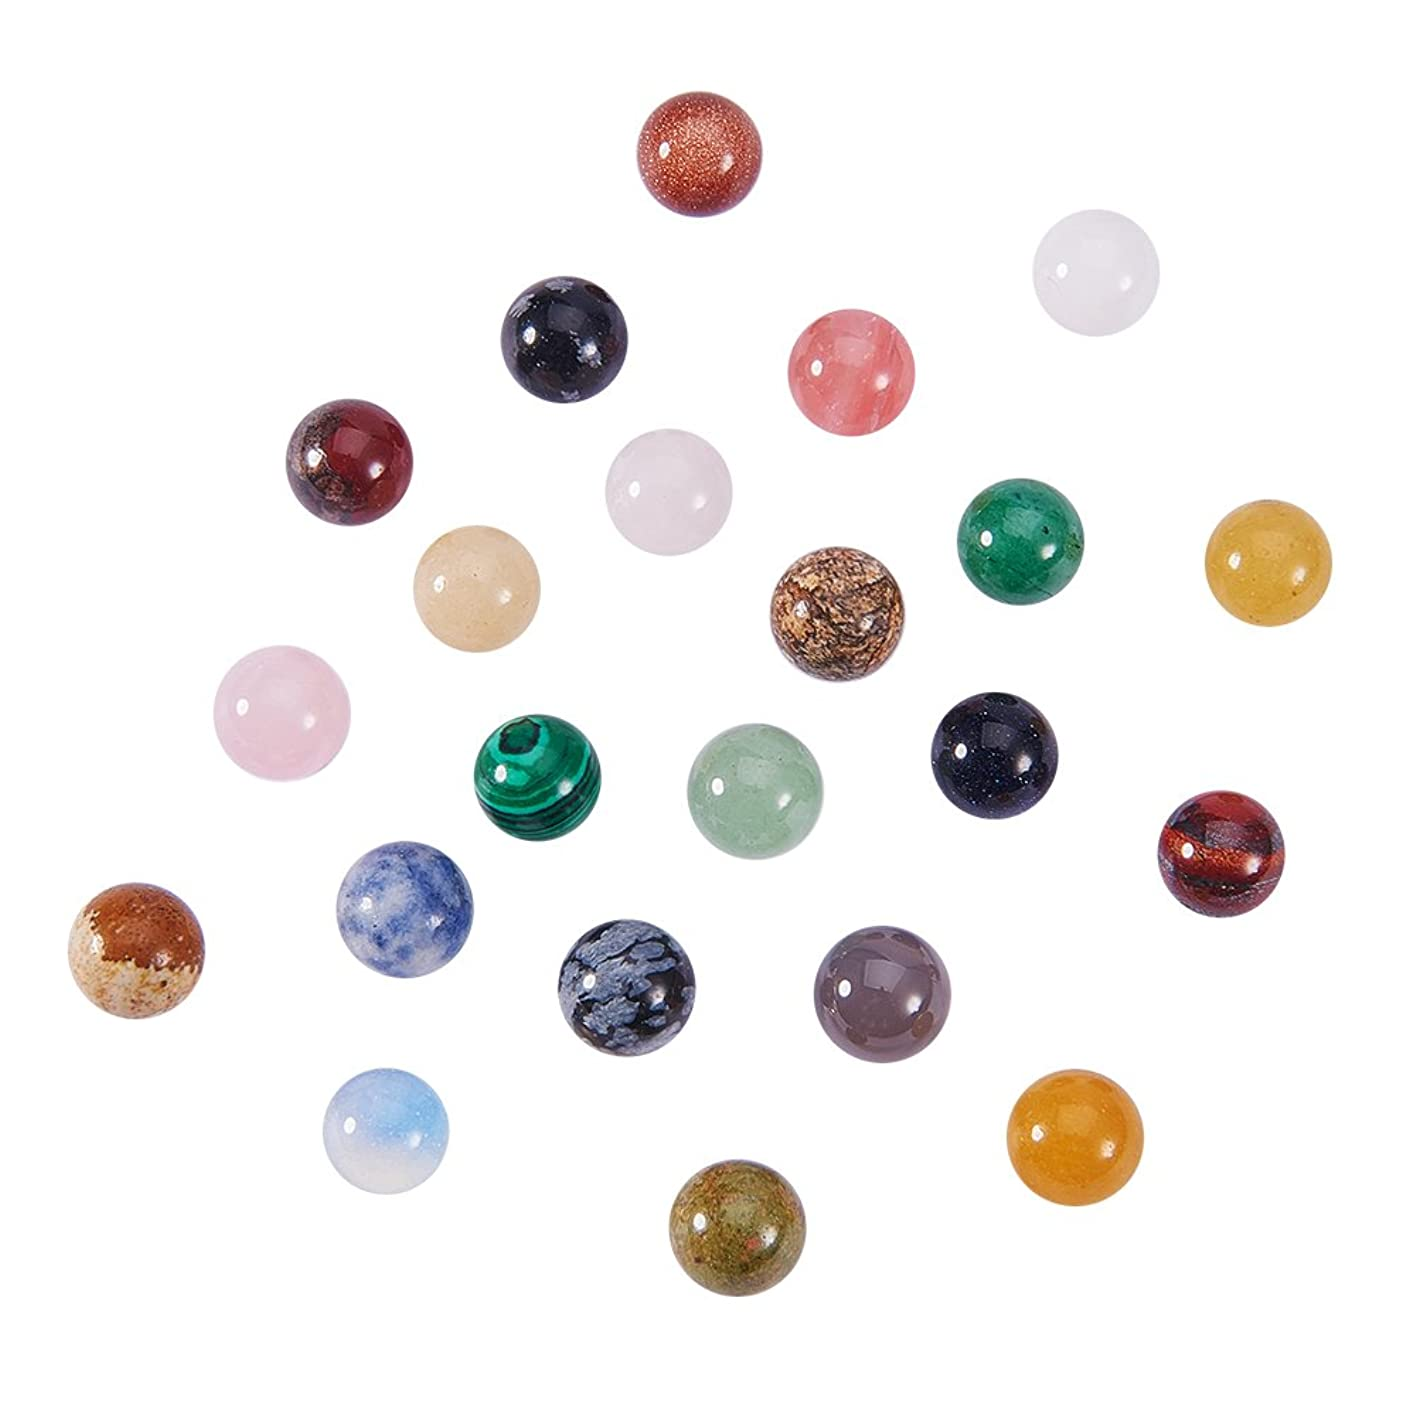 NBEADS 100 PCS Random Mixed Color No Hole Undrilled Natural Gemstone Beads, Synthetic Loose Beads Stone Charms for DIY Jewelry Making cycoprttfsv755